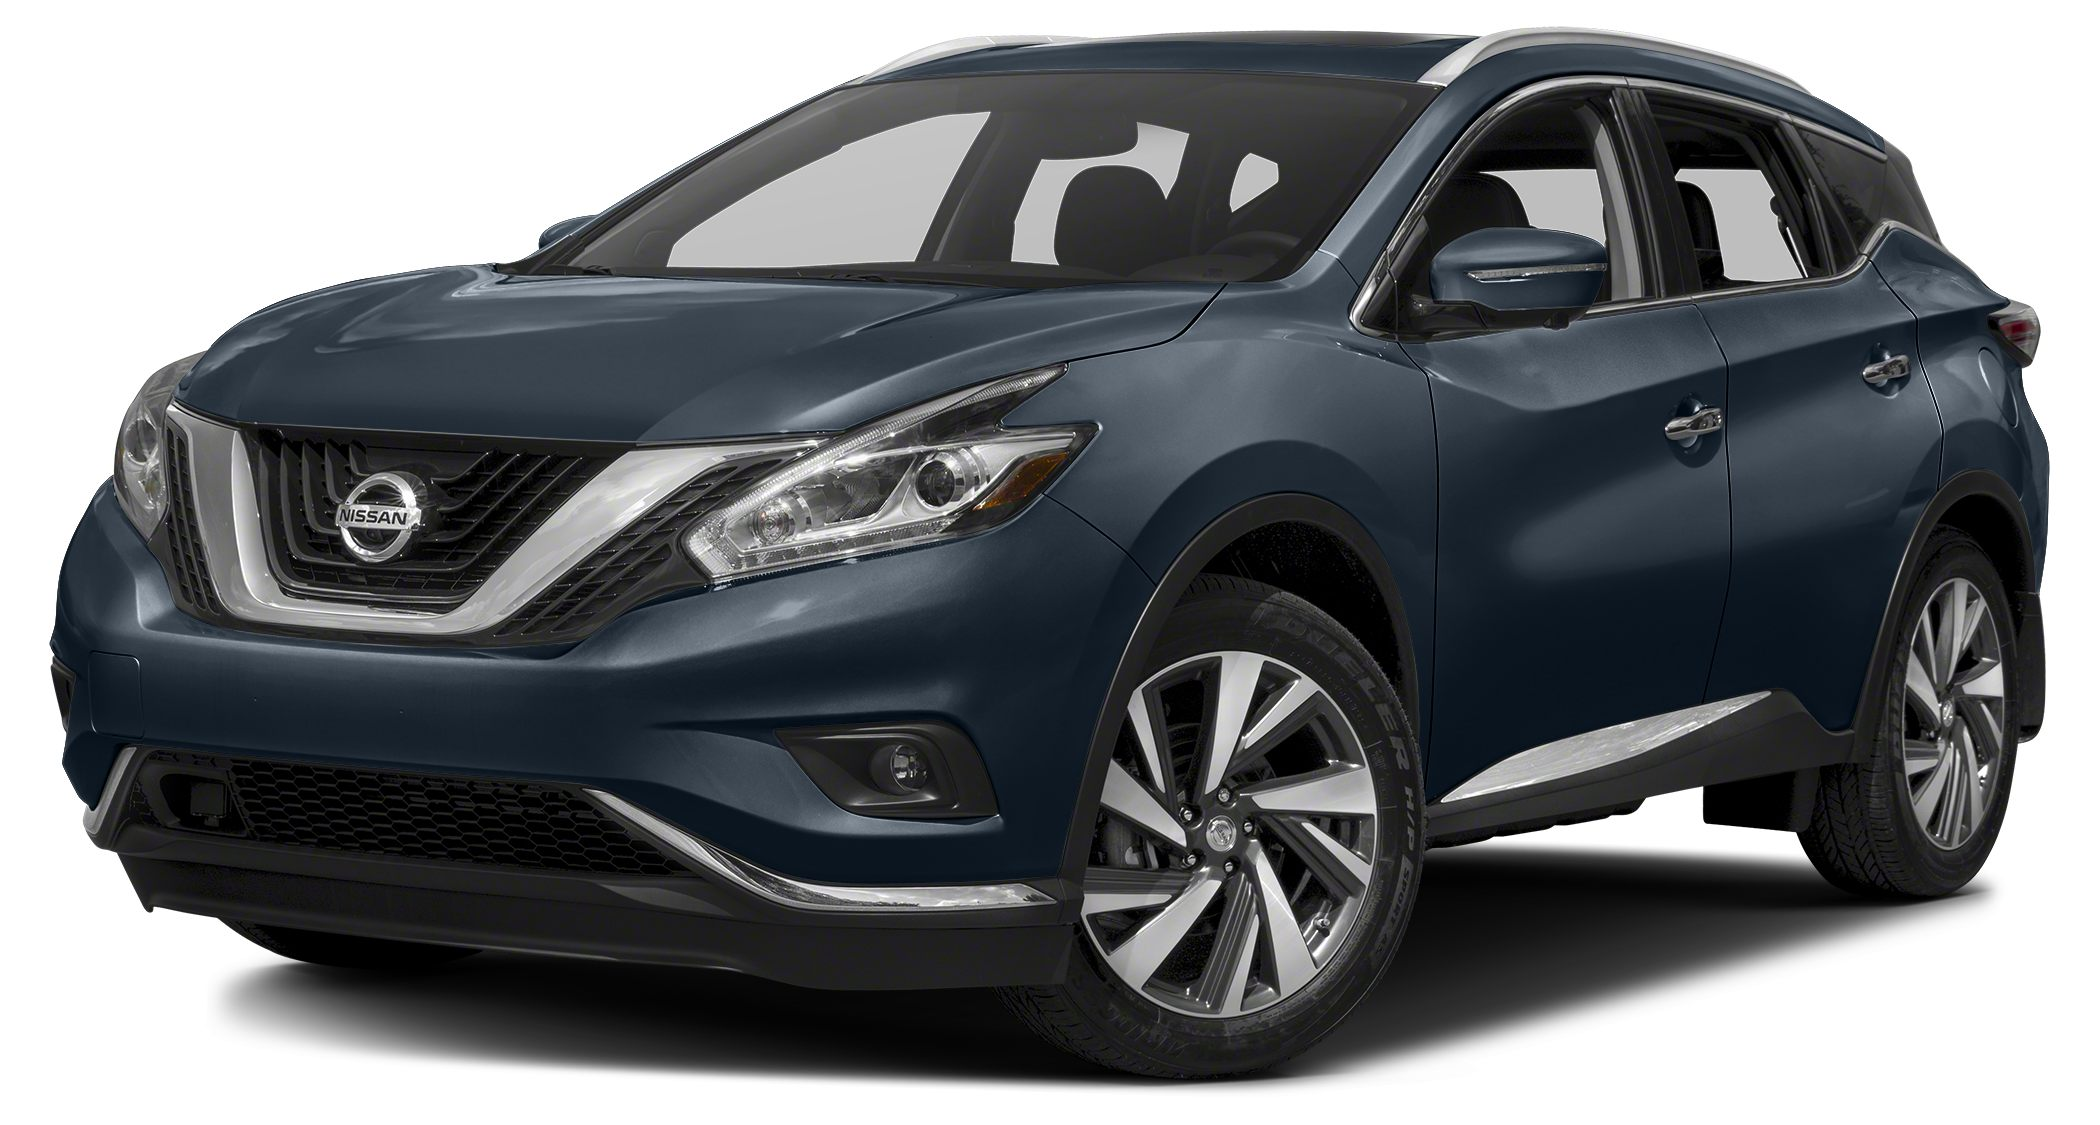 2017 Nissan Murano Platinum New Arrival This 2017 Nissan Murano Platinum will sell fast This Mur